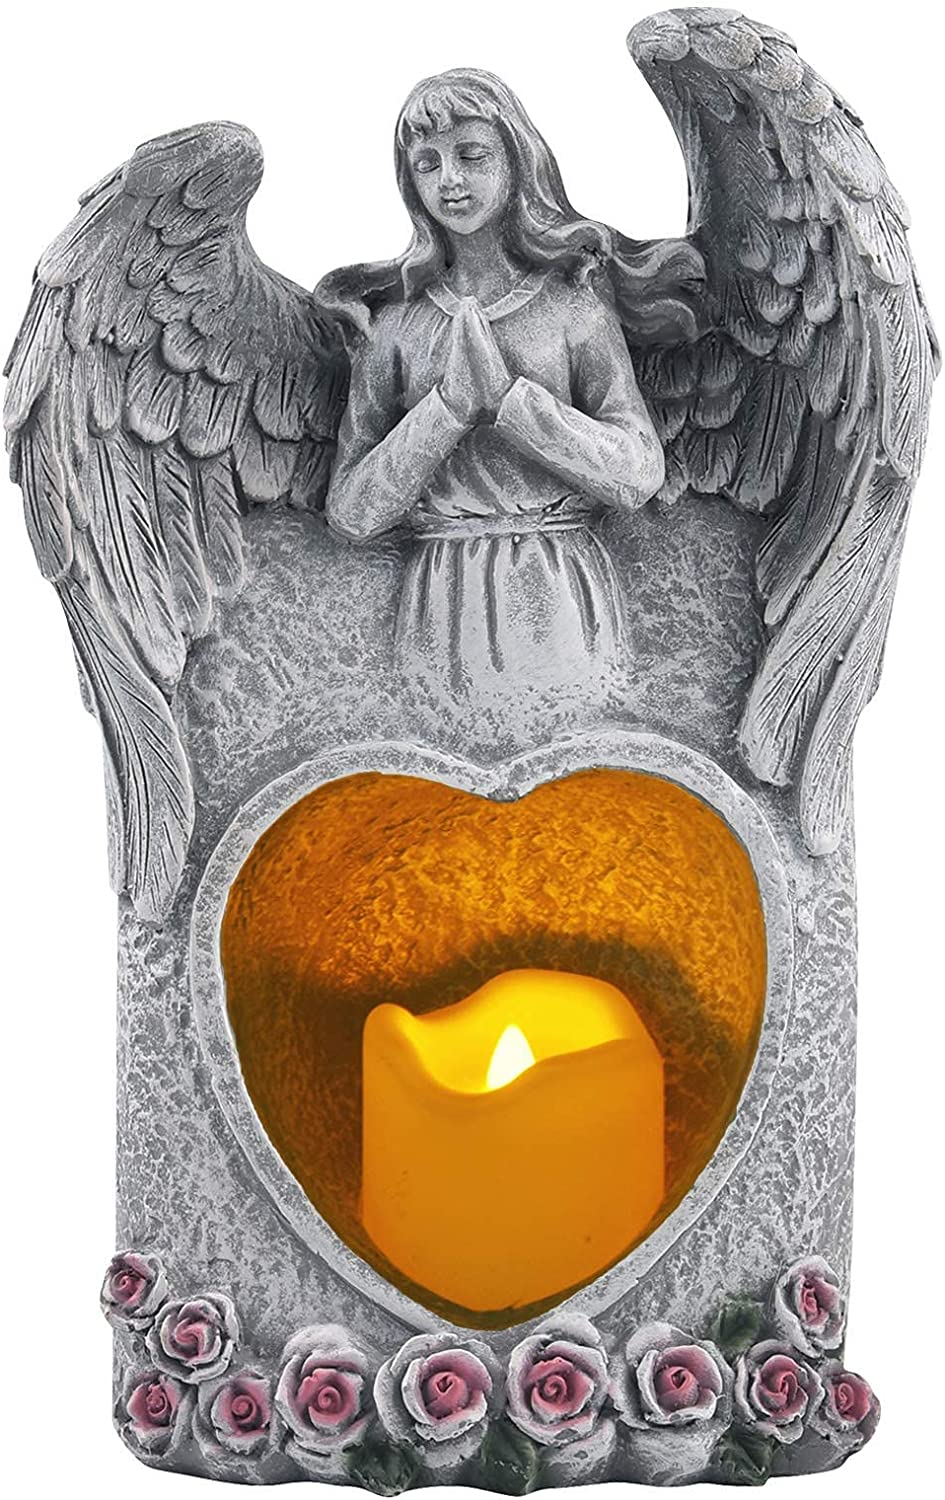 Praying Angel Memorial Gift, Solar Powered Sympathy Bereavement Gifts with Flickering Flameless Candle, Garden Guardian Angel Statue for Outdoor Patio in Memory of Loved One